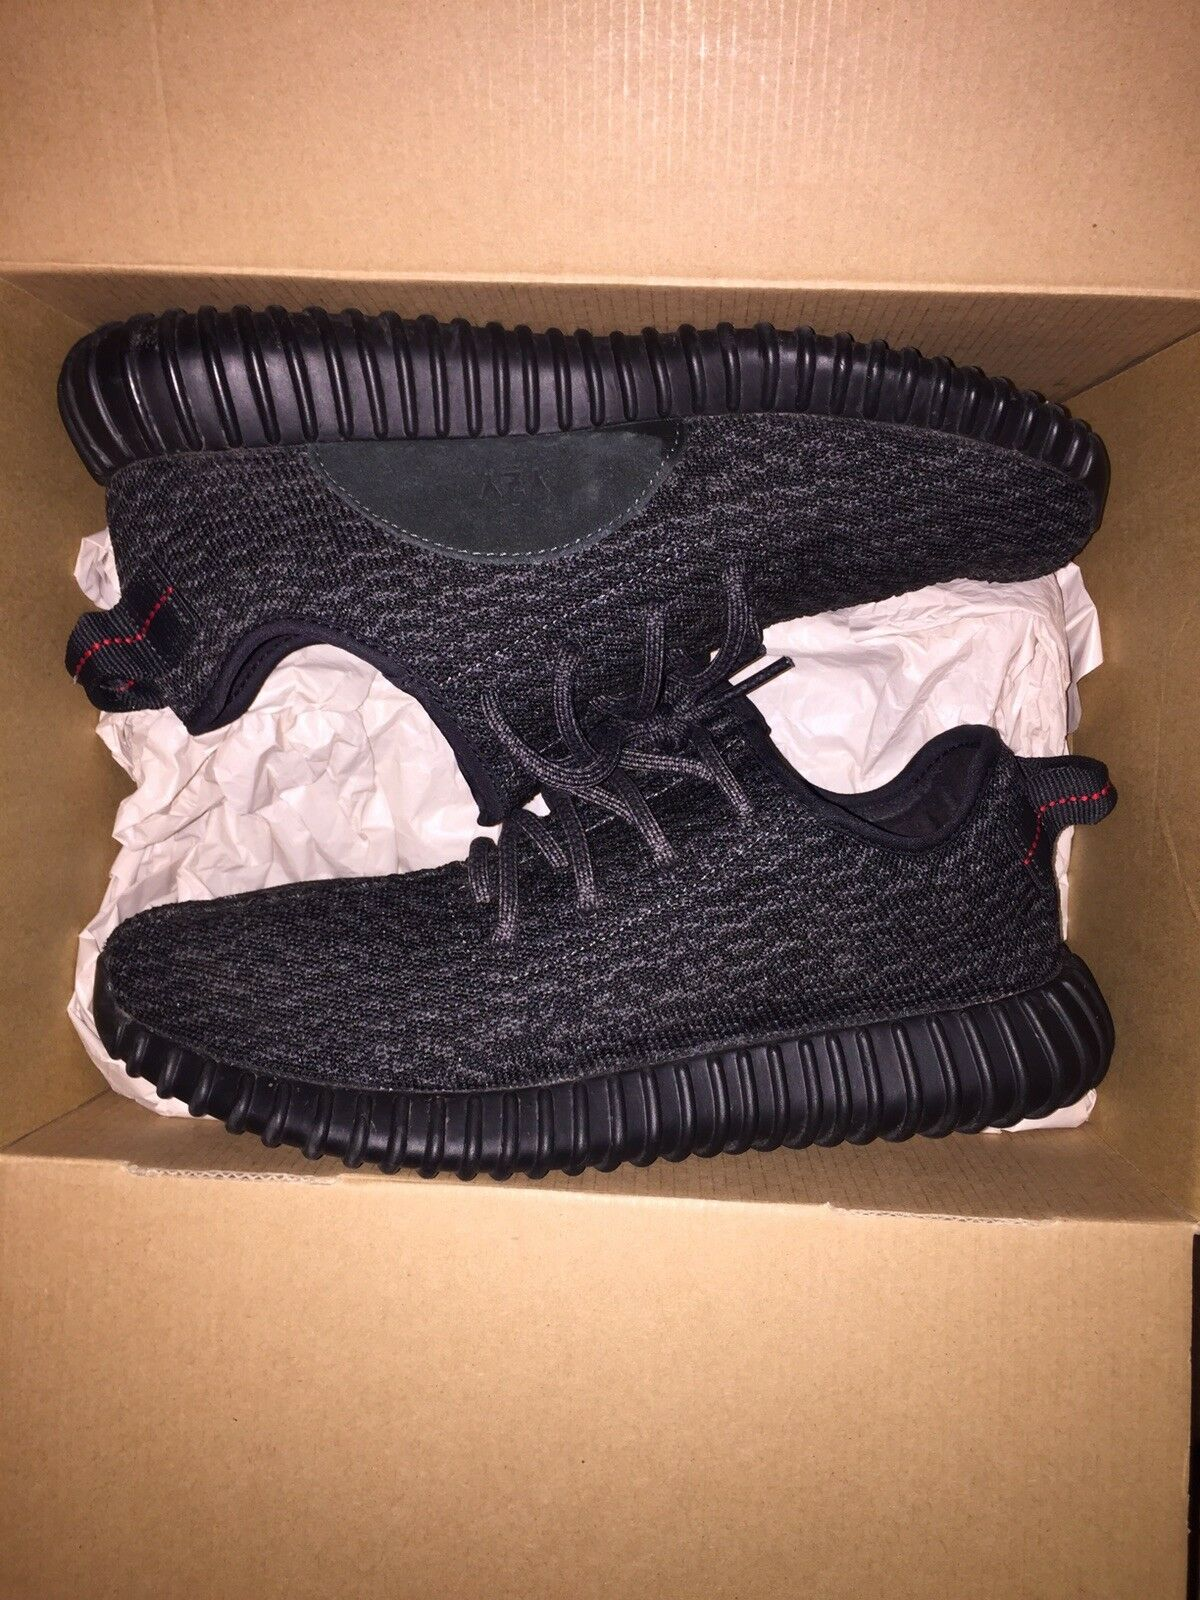 Authentic Adidas Yeezy Boost 350 Pirate Black 2016 Size 8